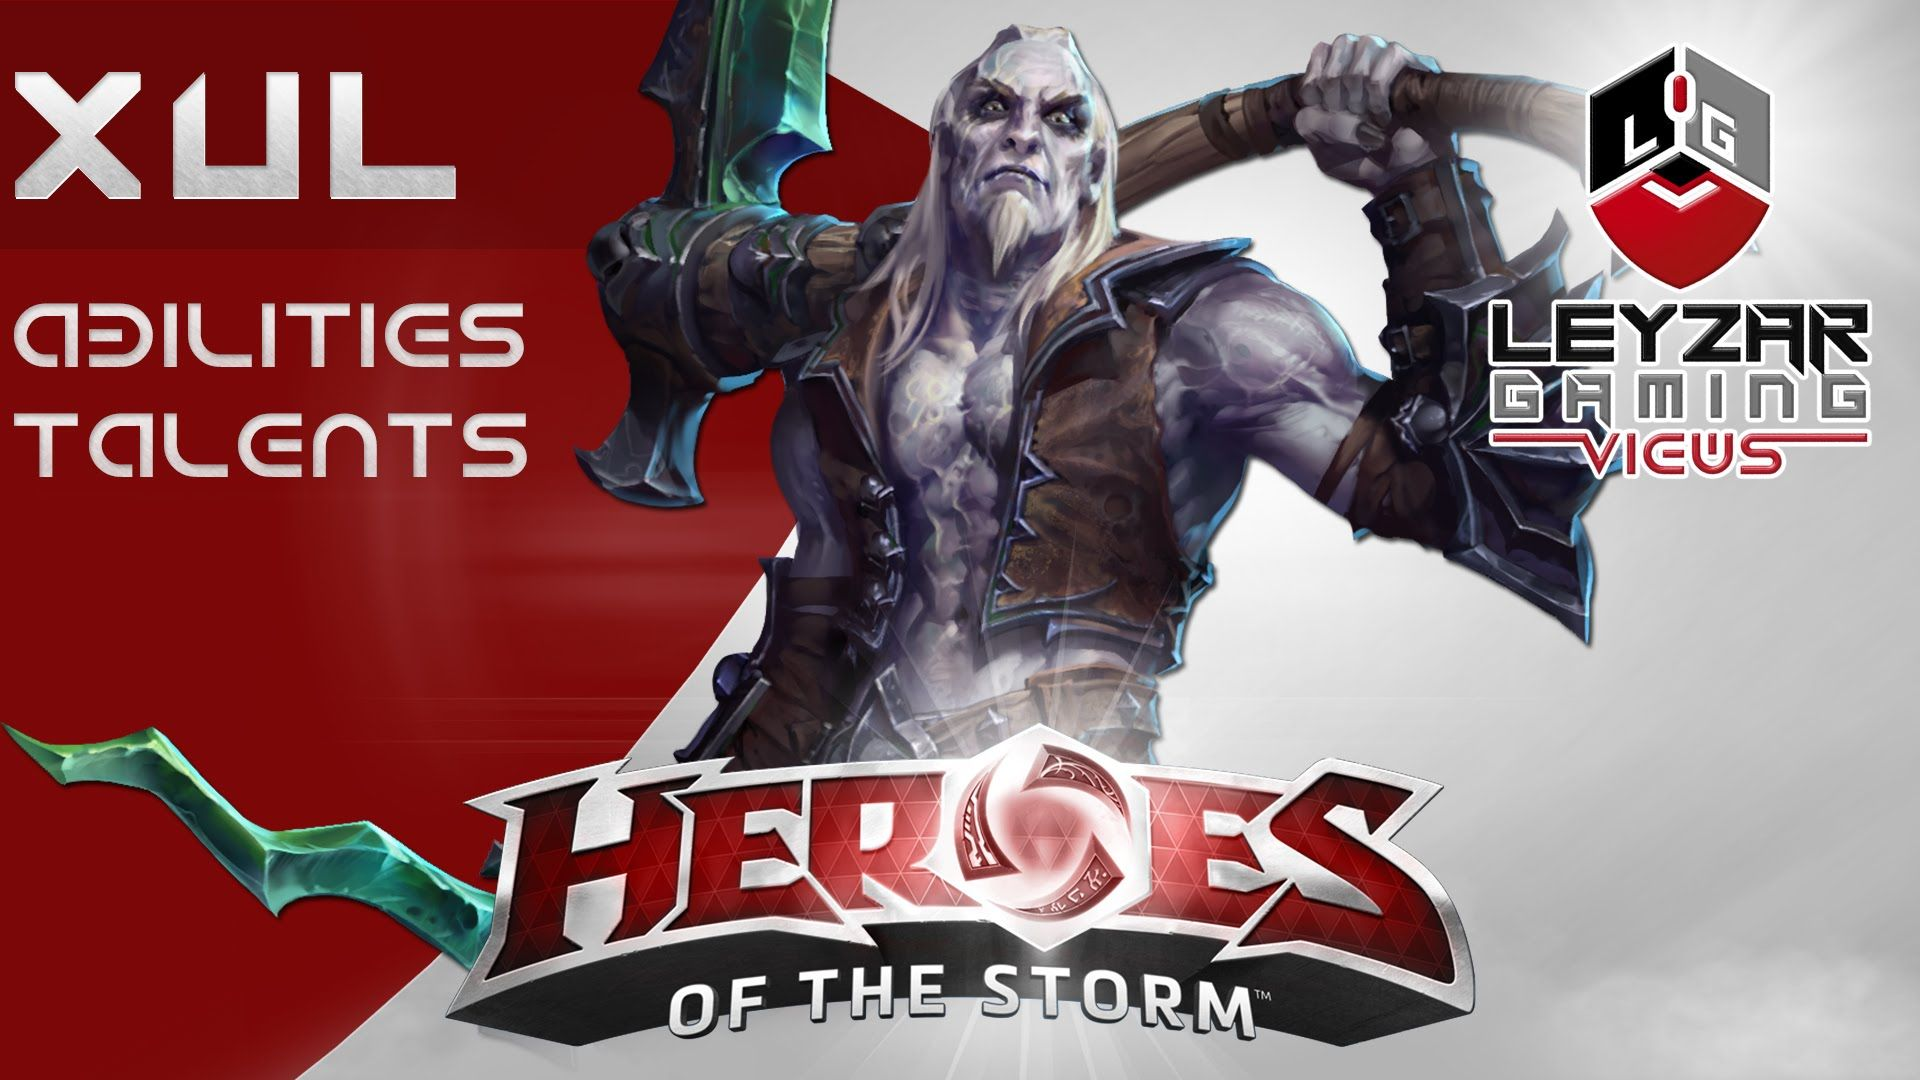 Heroes Of The Storm Hots News Xul Abilities Talents Release Date Slideshow Heroes Of The Storm Hero Storm Find out the best talent build for playing xul at a competitive level in heroes of the storm. the storm hots news xul abilities